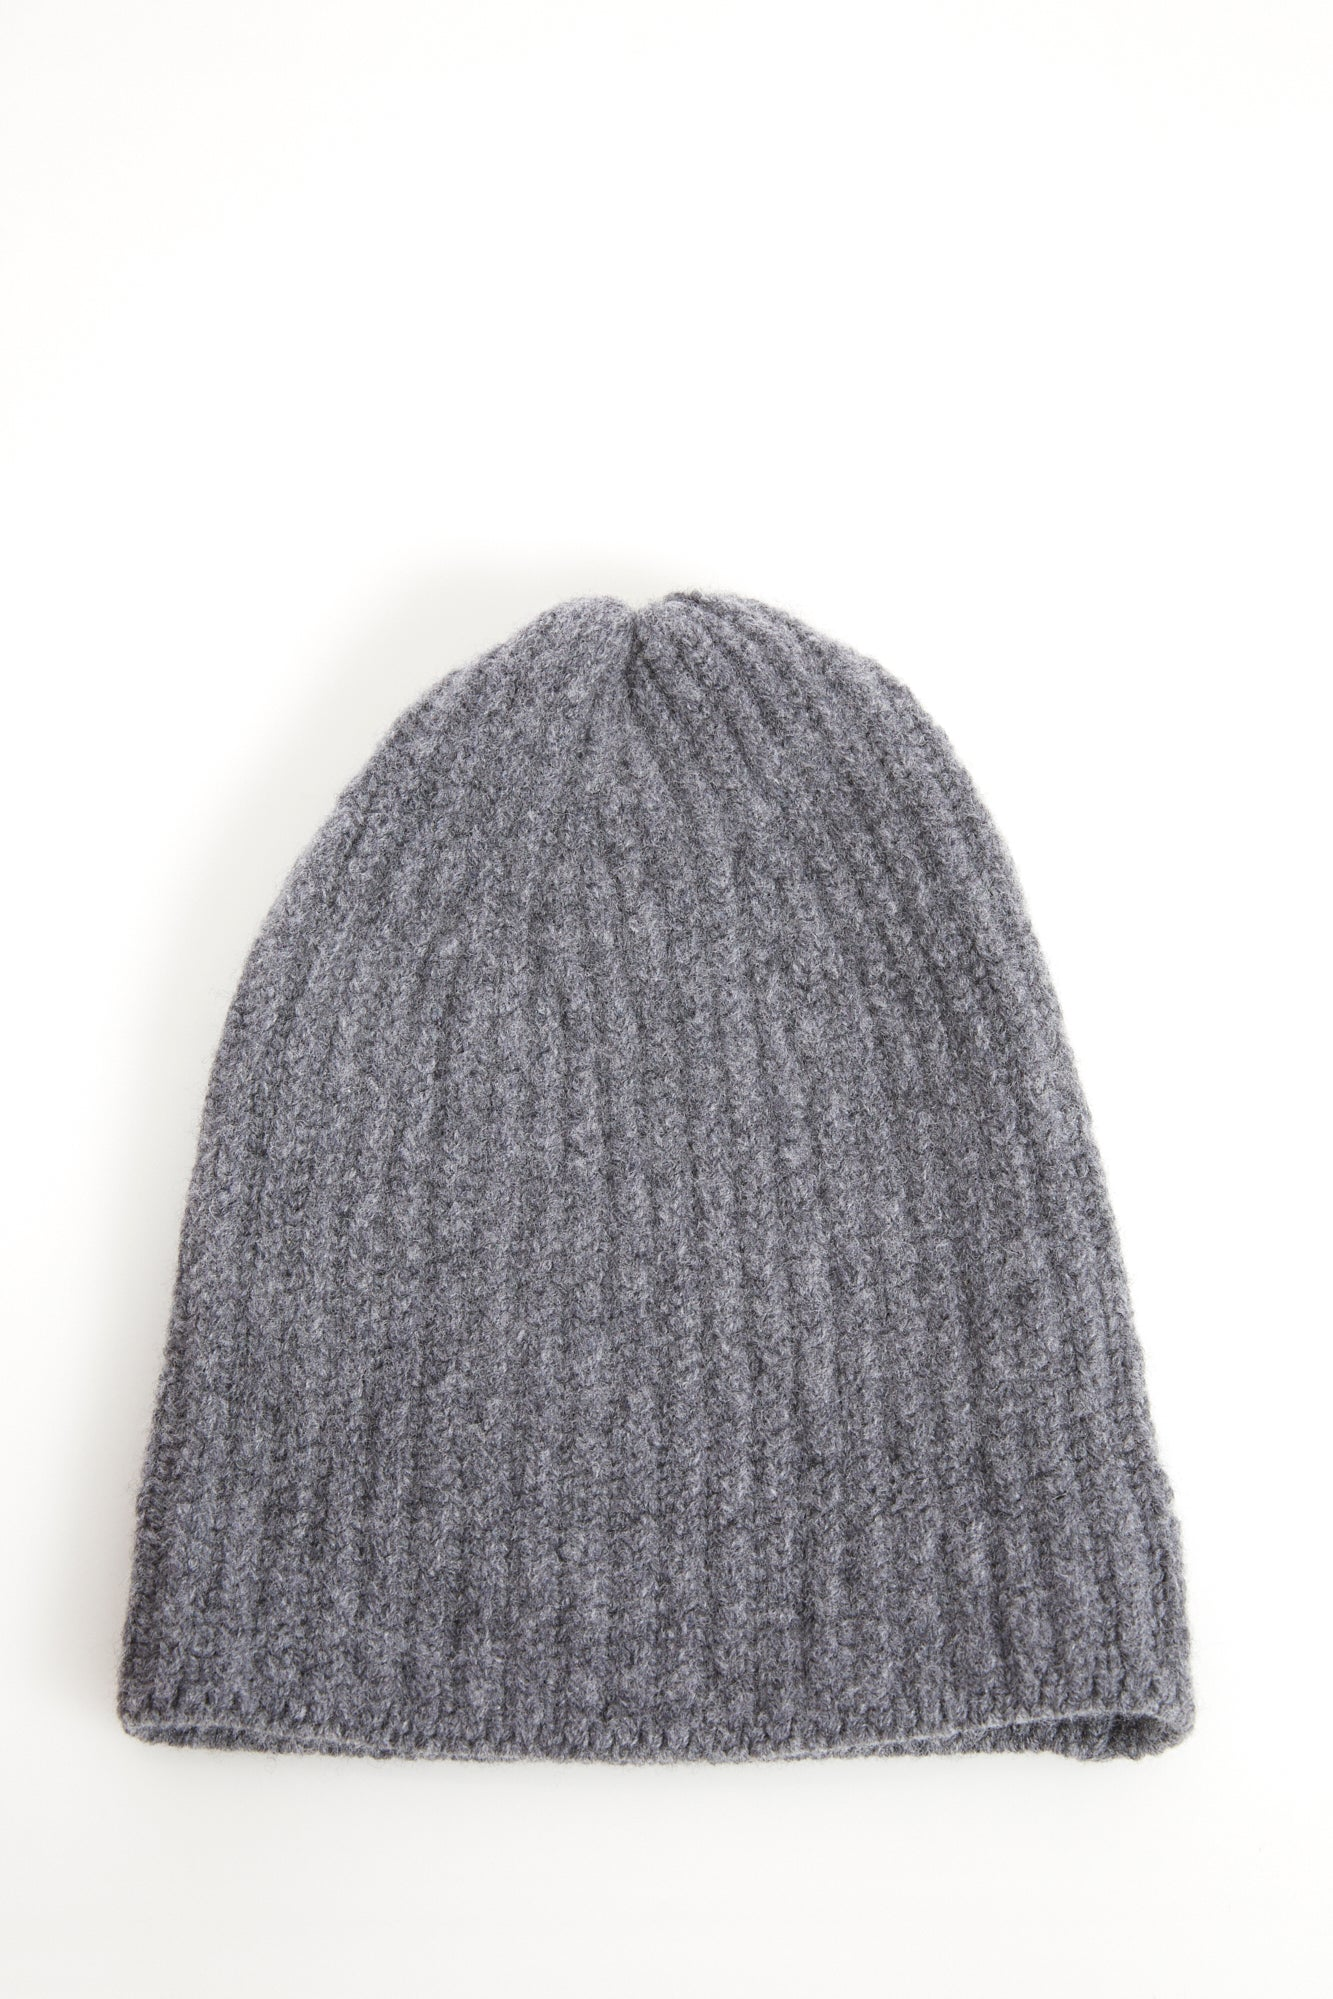 Inis Meáin Light Grey Ribbed Wool Hat - Accessories - Inis Meáin - LALONDE's